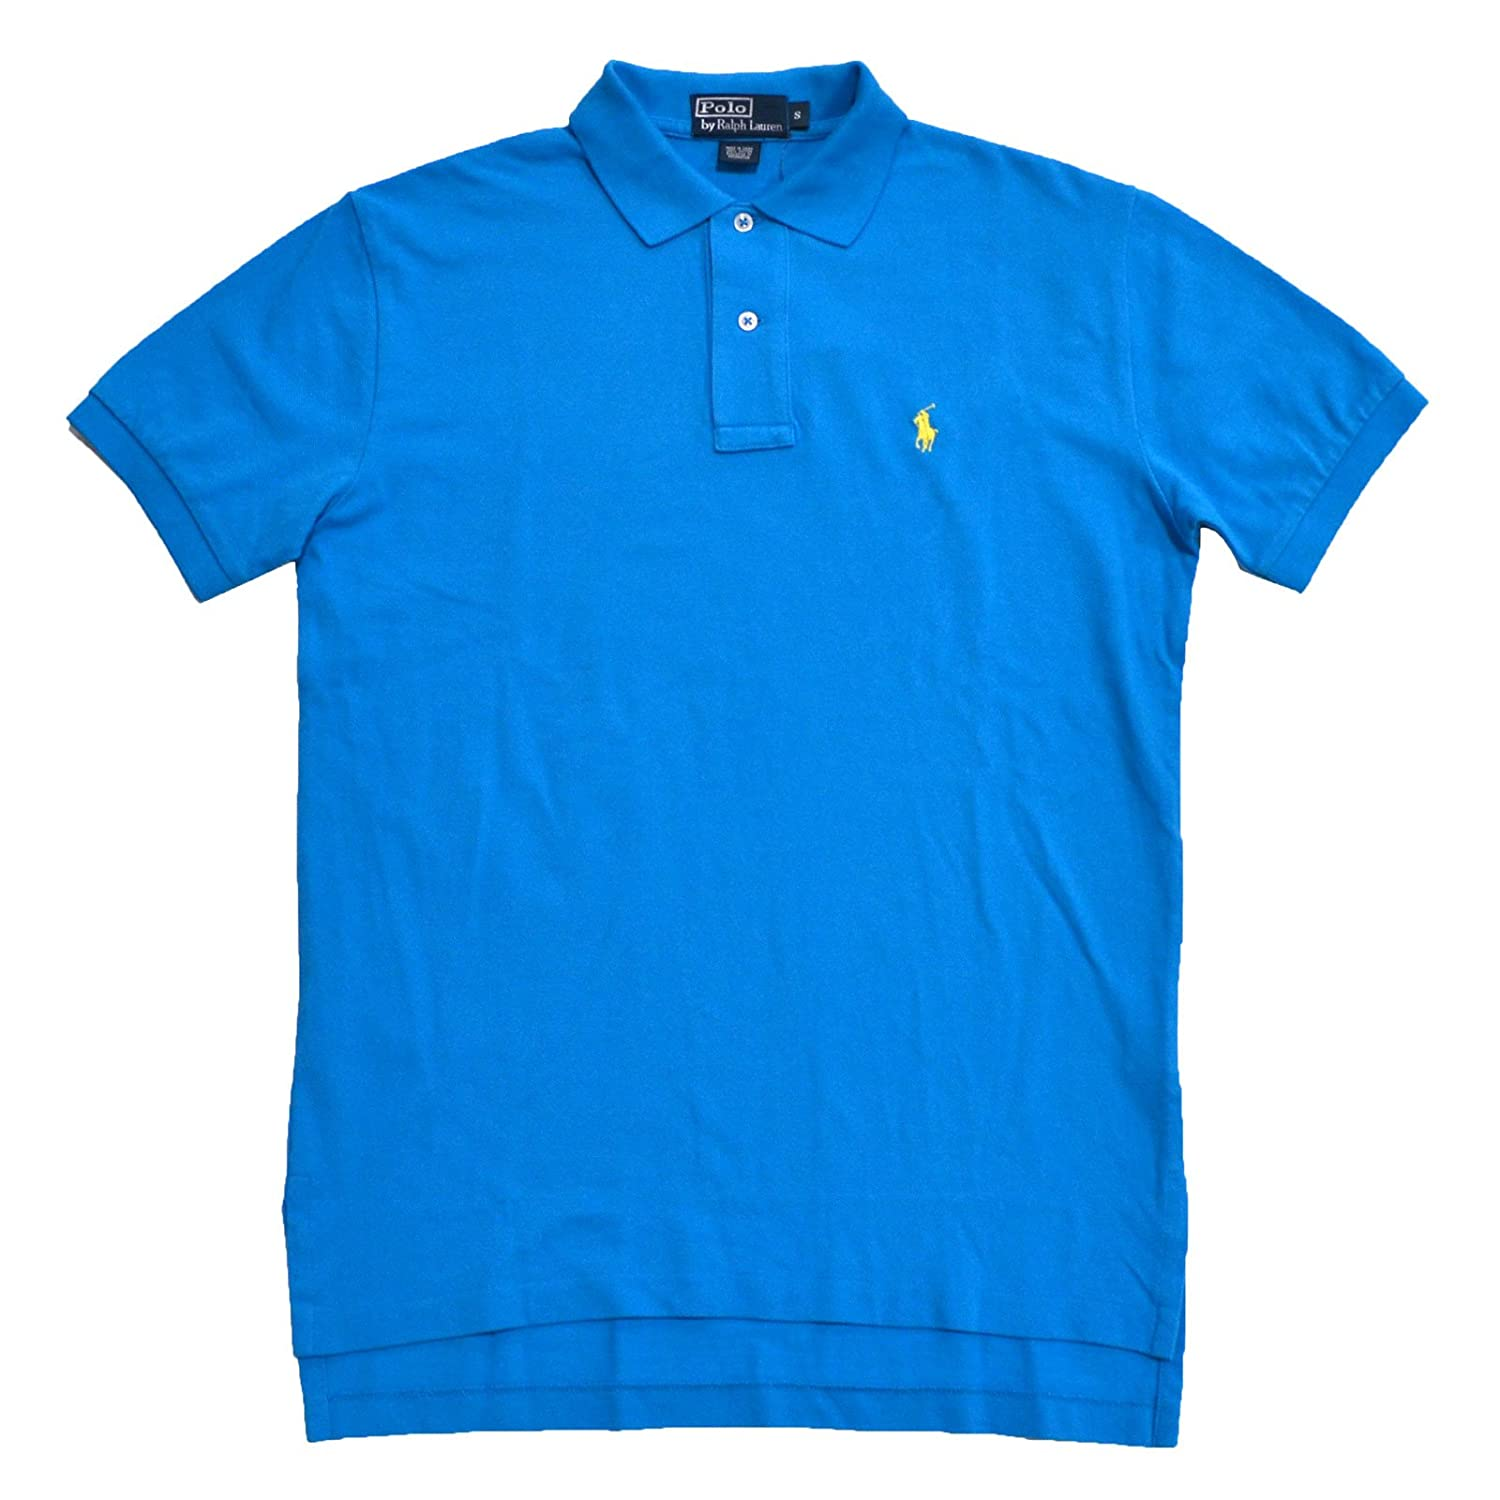 Polo ralph lauren discount coupon